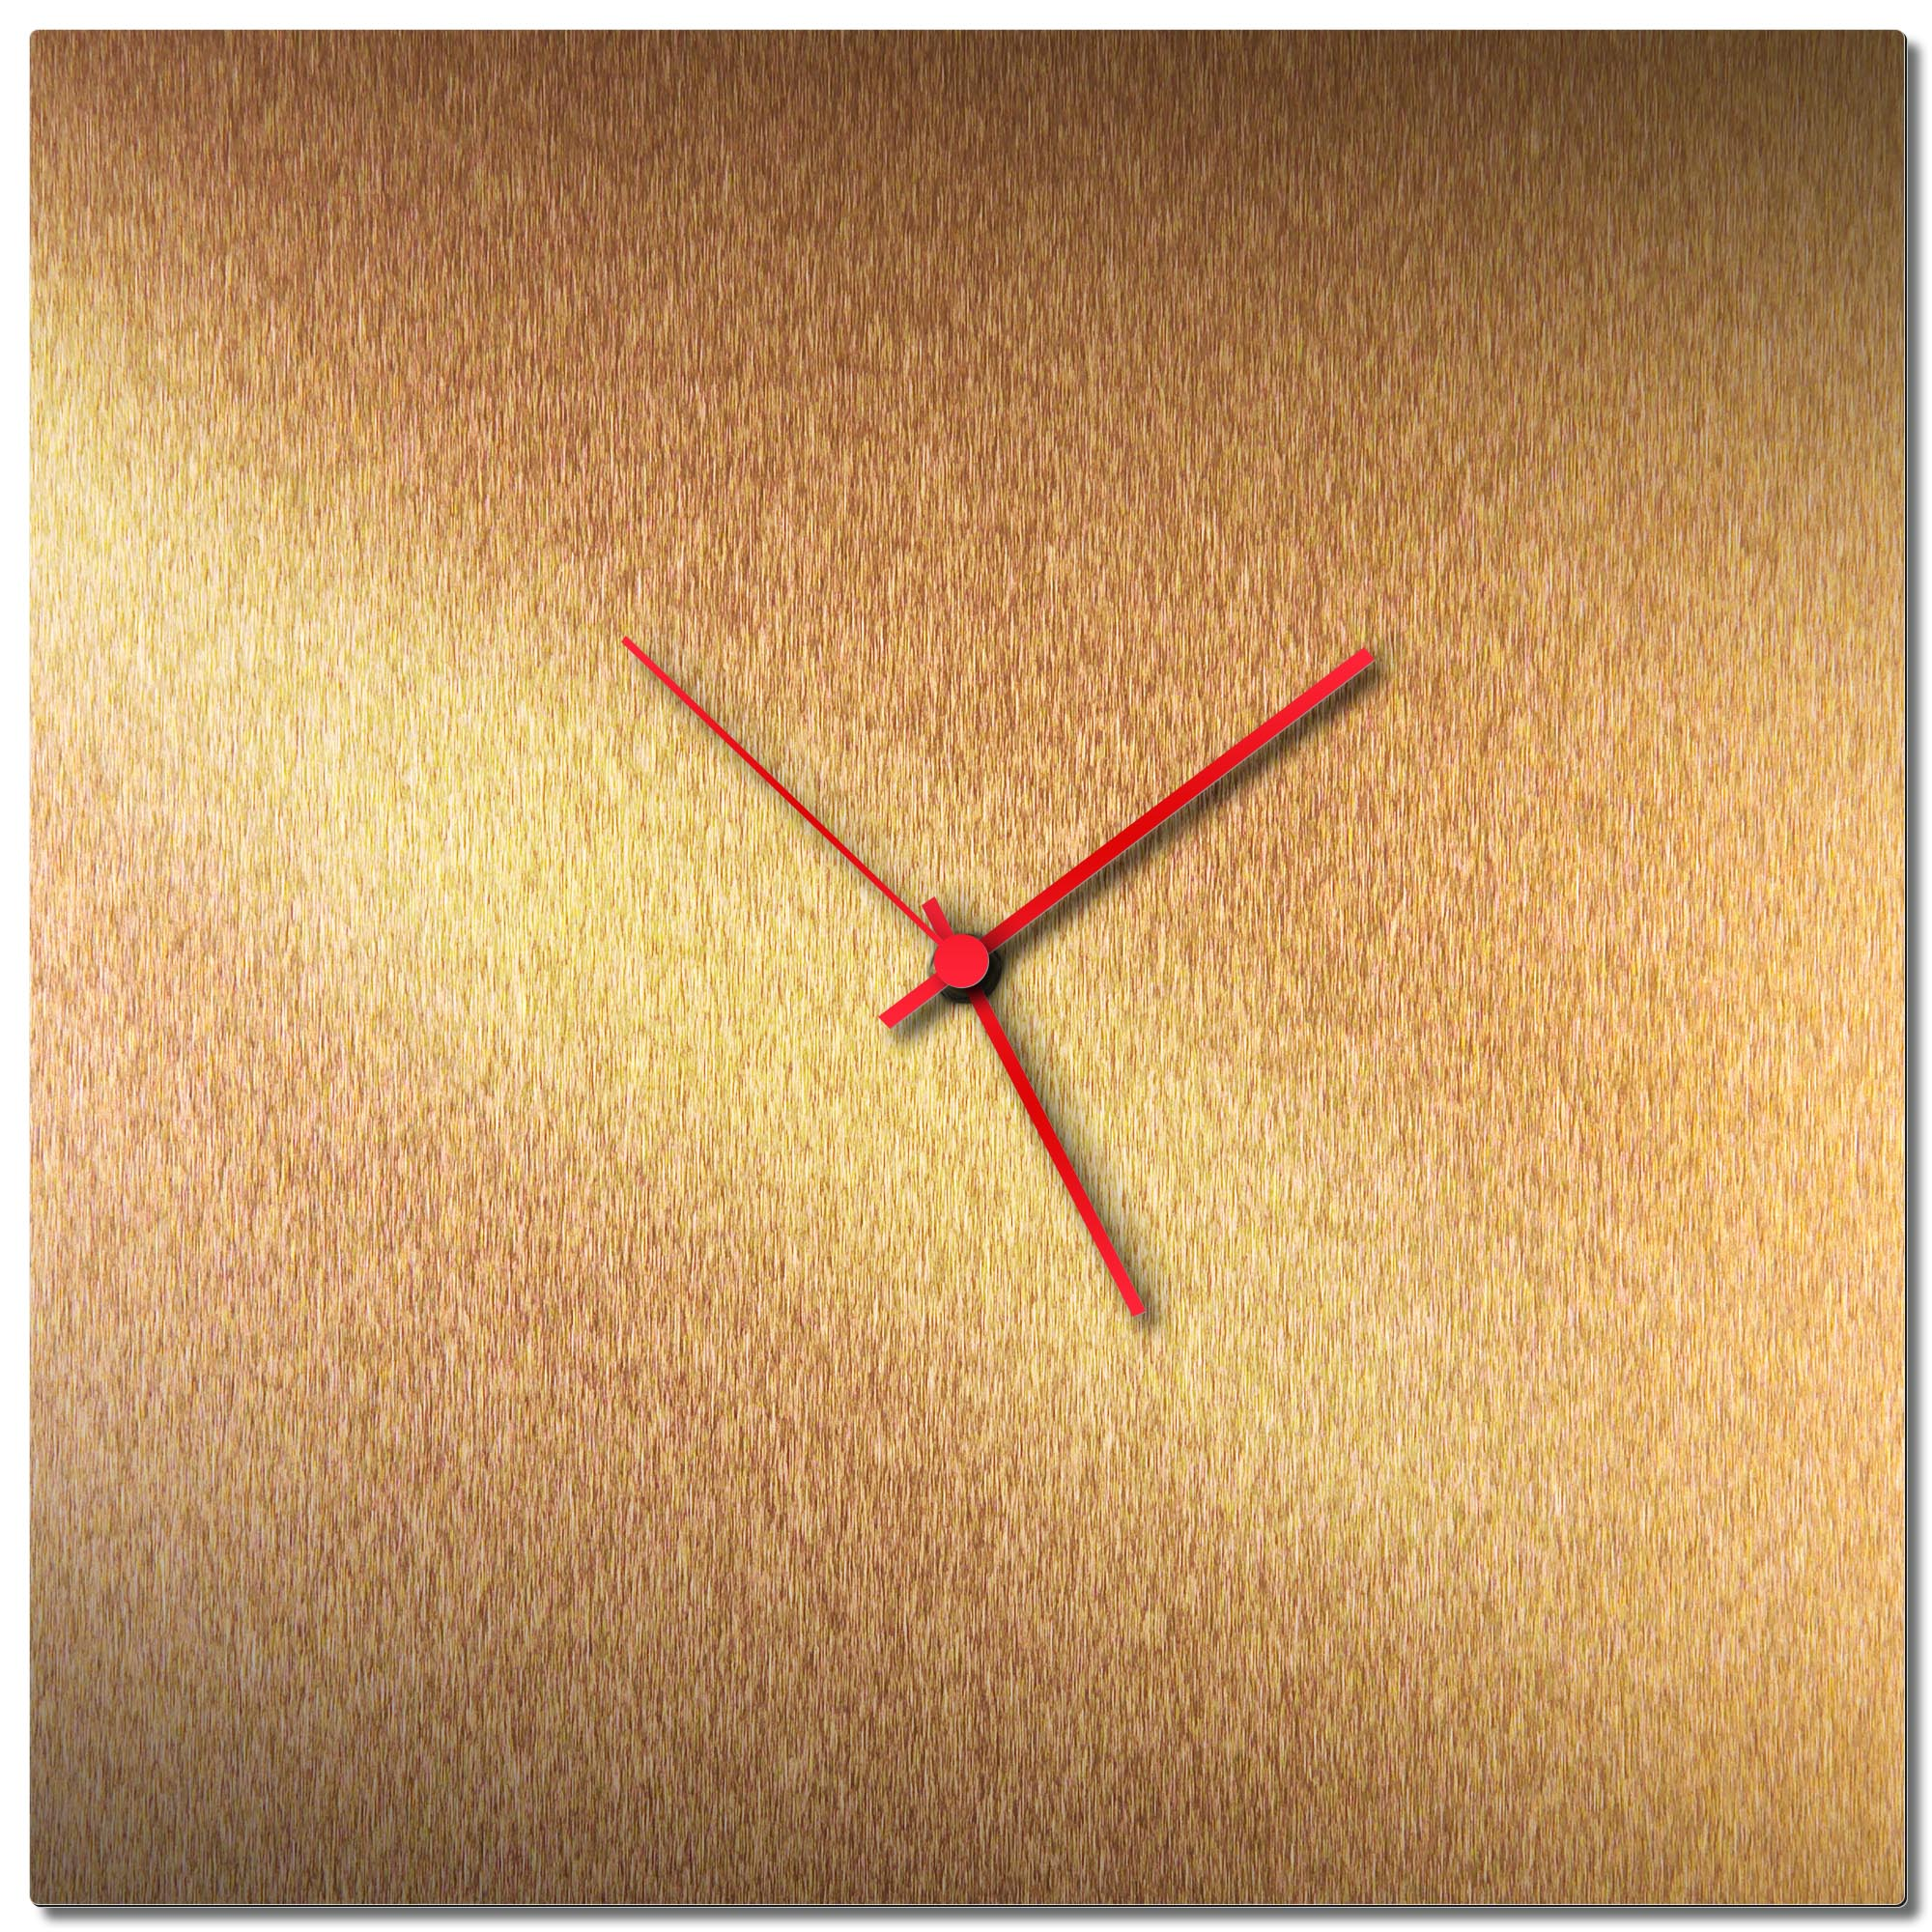 Adam Schwoeppe 'Bronzesmith Square Clock Red' Midcentury Modern Style Wall Clock